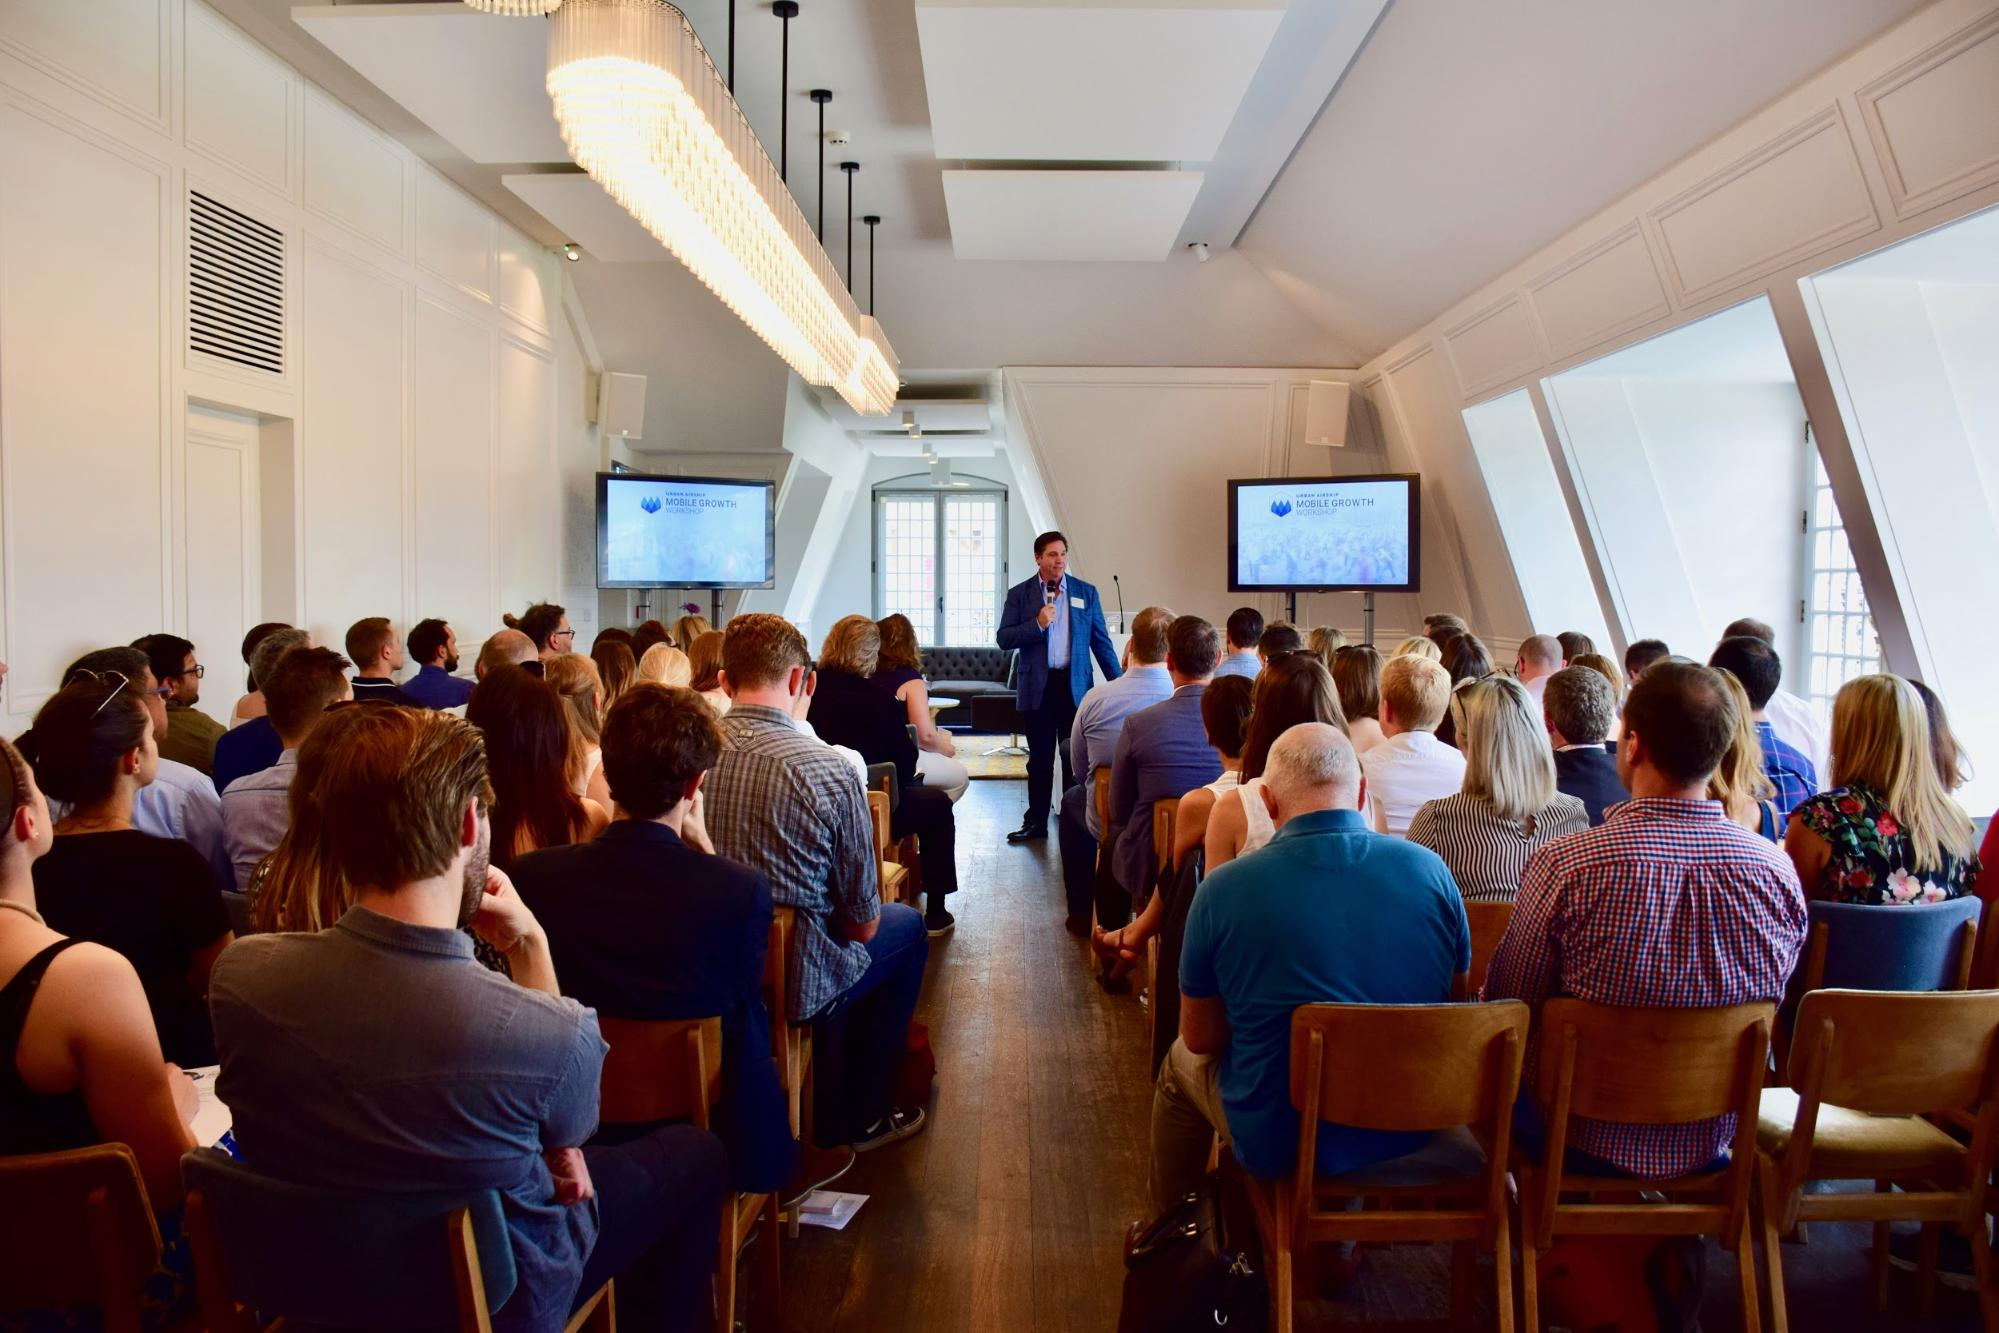 brett-caine-welcomes-attendees-to-urban-airship-mobile-growth-workshop-london